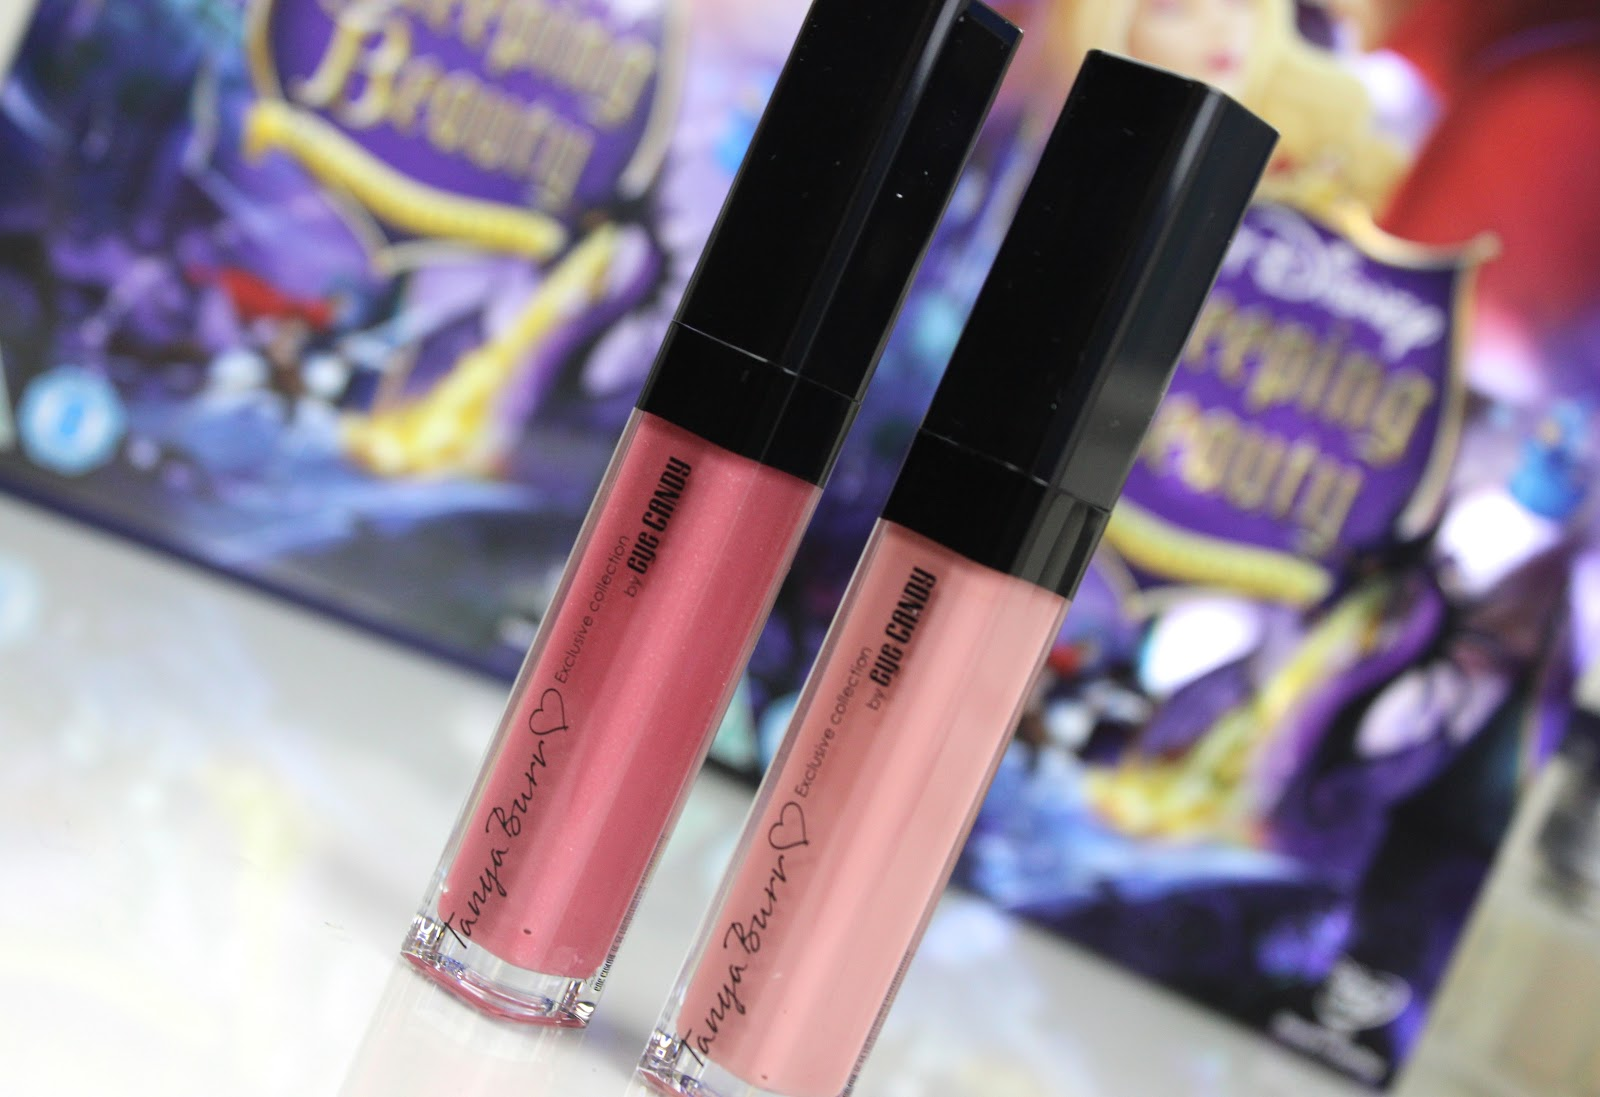 Tanya Burr Lips and Nails Lipgloss in Afternoon Tea and Aurora